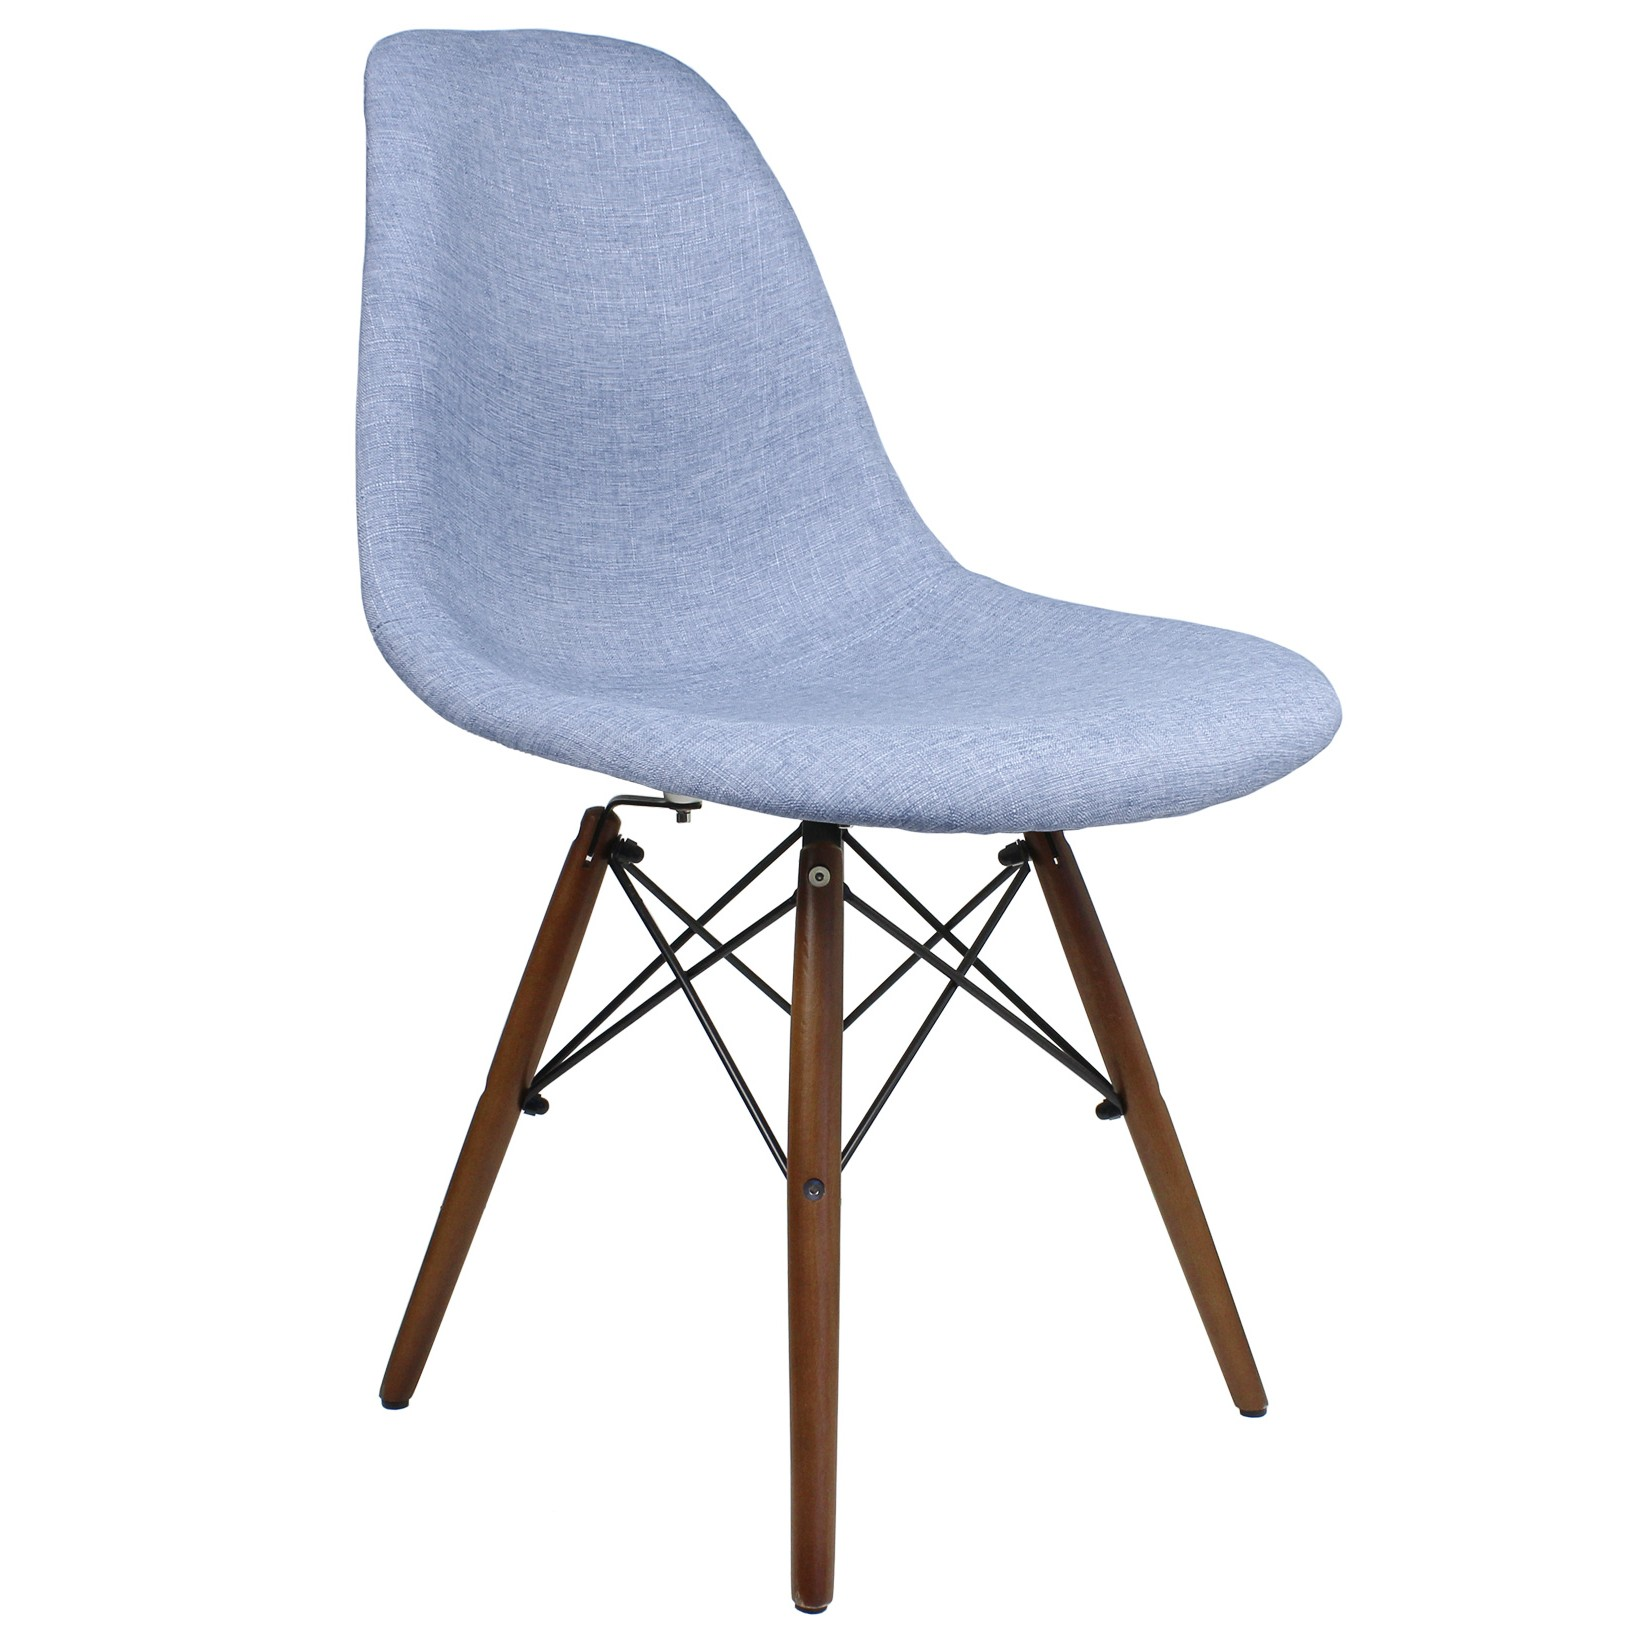 Denim Chair Blue Denim Fabric Upholstered Modern Accent Side Dining Chair